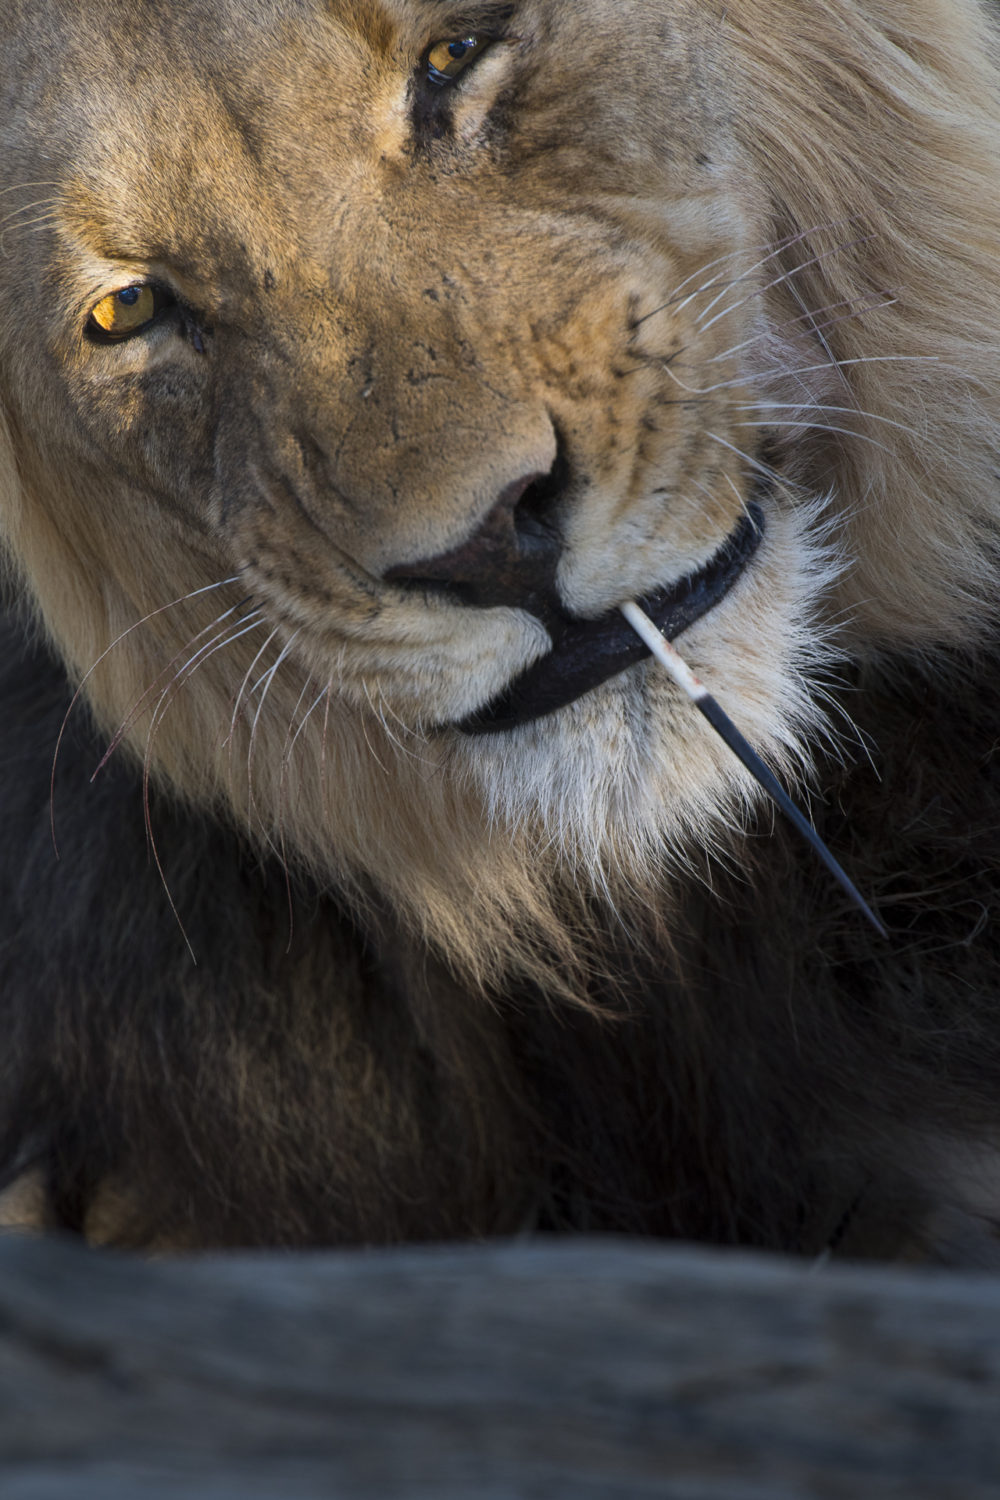 Kalahari male lion with porcupine quill